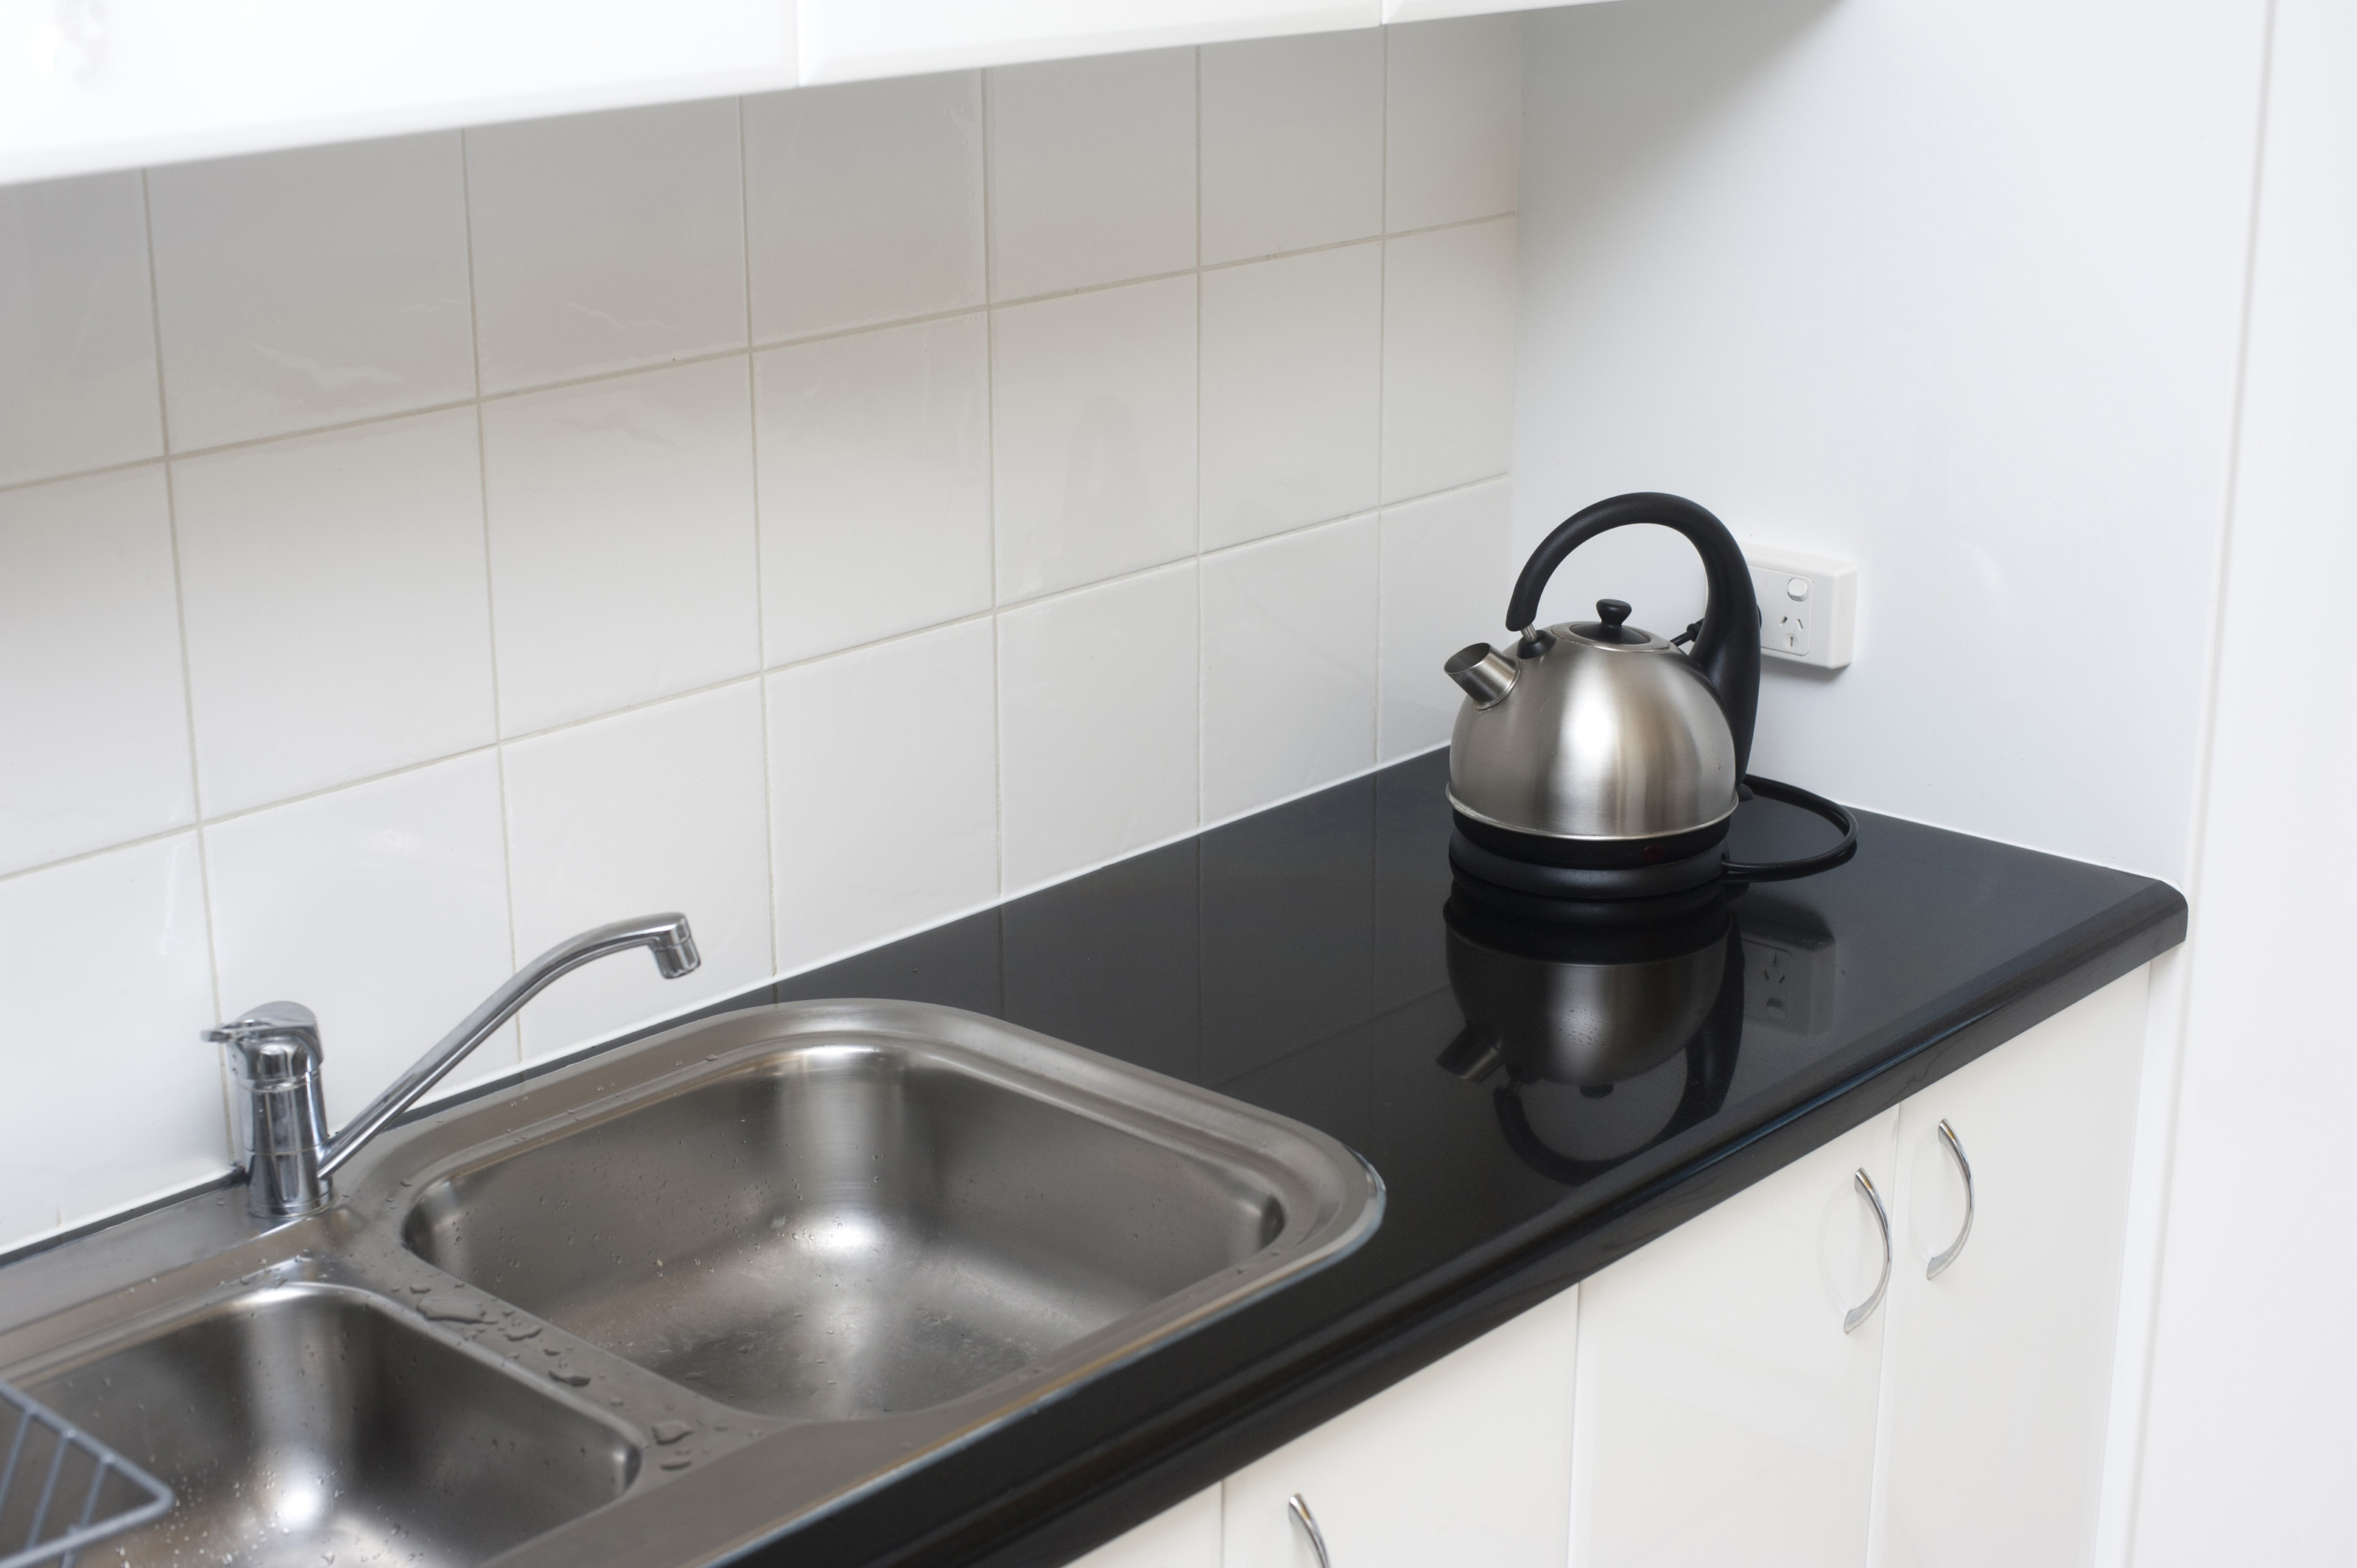 Kitchen Sink Double : Small kitchen with double stainless steel sink unit, black countertop ...